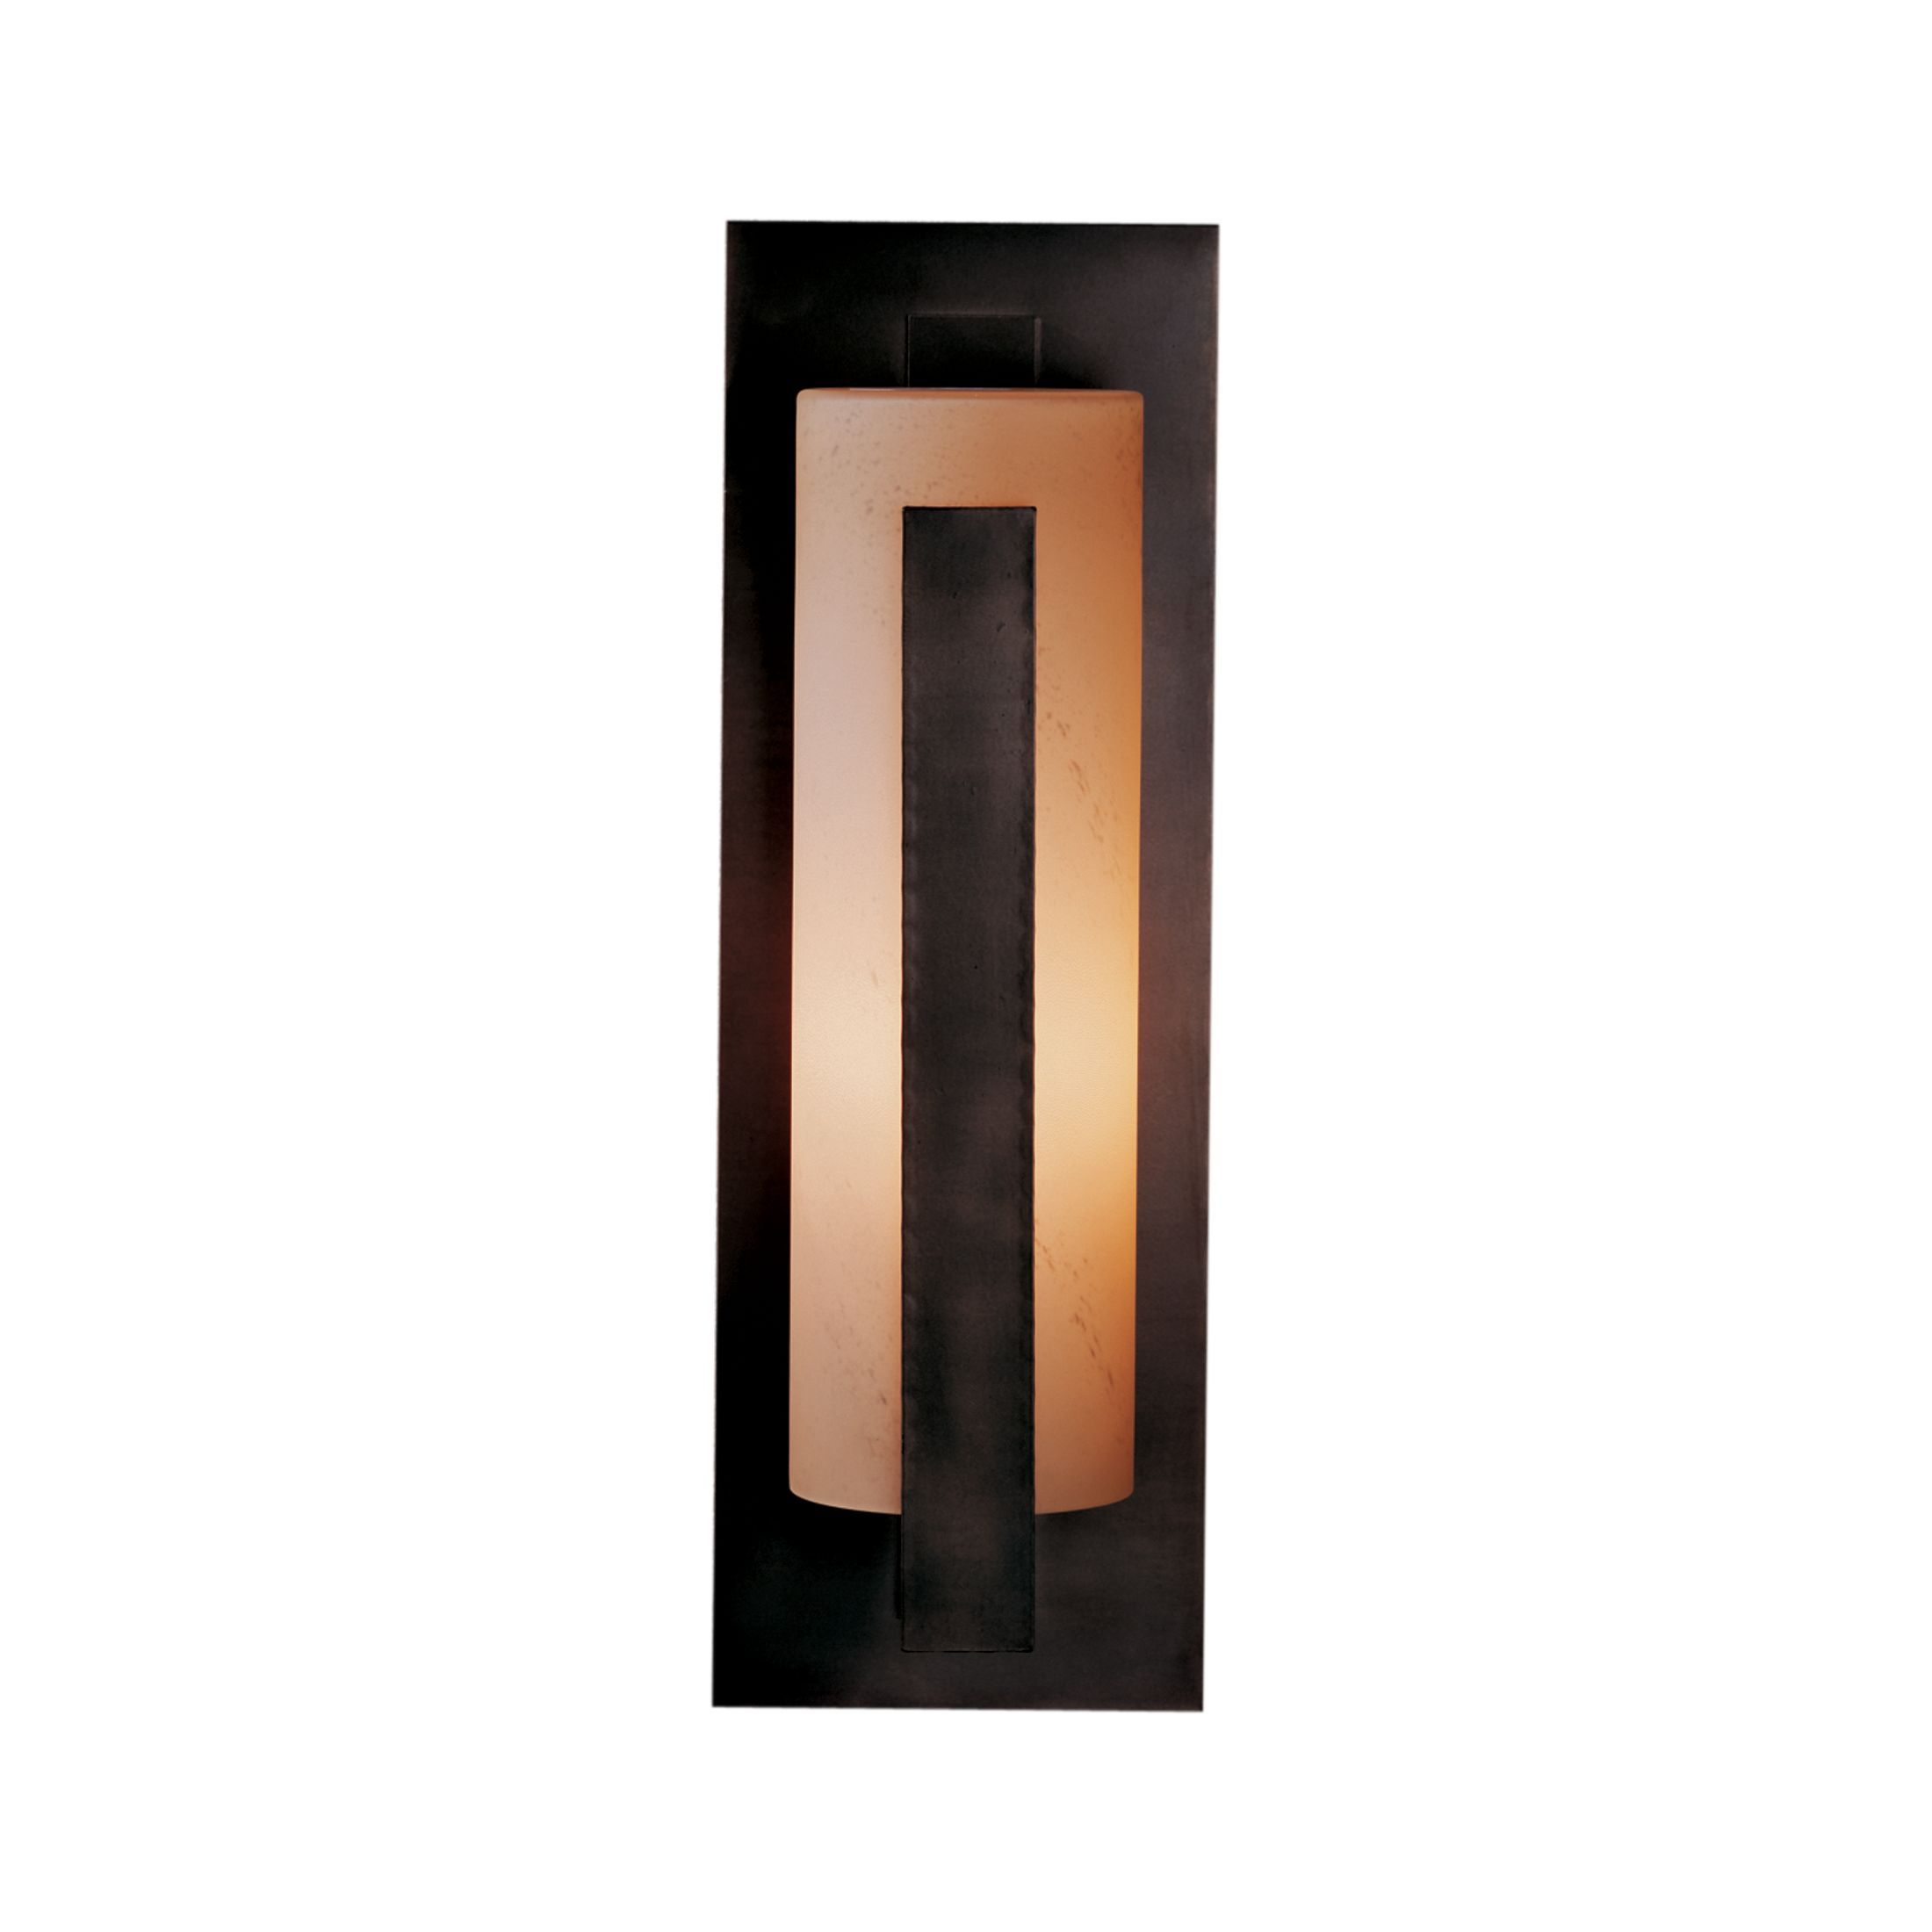 Thumbnail for Forged Vertical Bars Large Outdoor Sconce